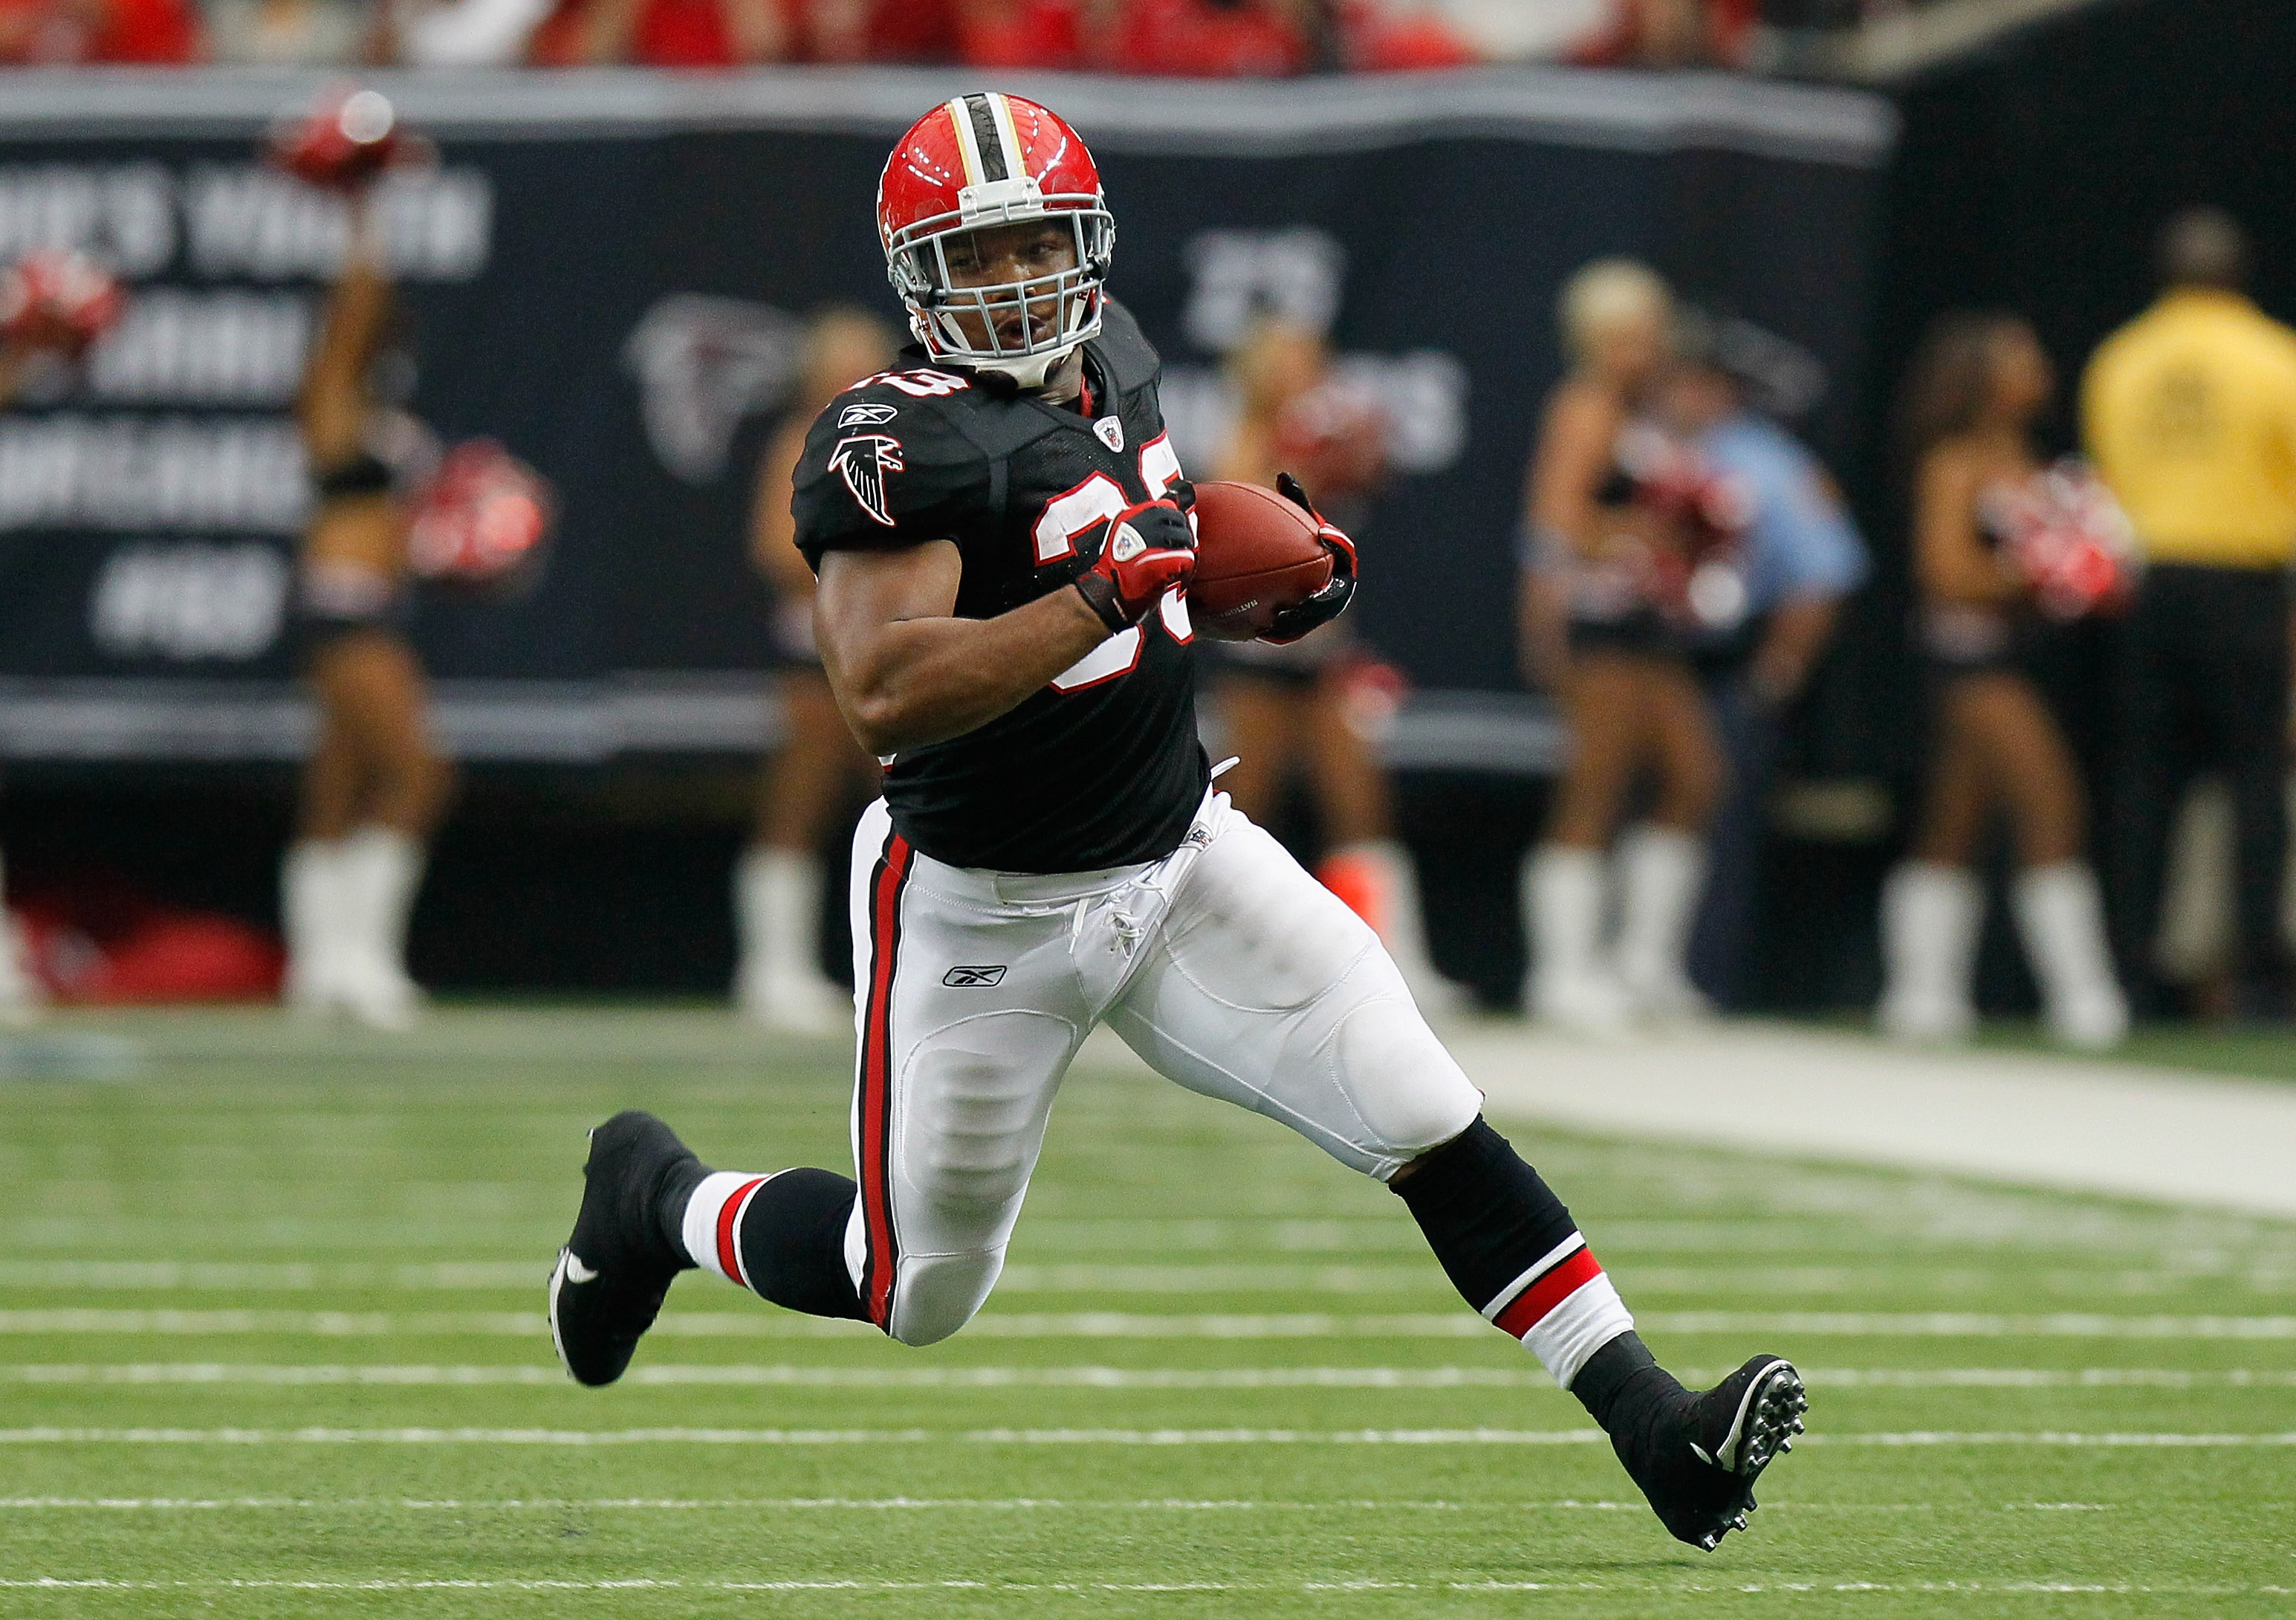 ATLANTA - OCTOBER 03:  Michael Turner #33 of the Atlanta Falcons rushes upfield against the San Francisco 49ers at Georgia Dome on October 3, 2010 in Atlanta, Georgia.  (Photo by Kevin C. Cox/Getty Images)